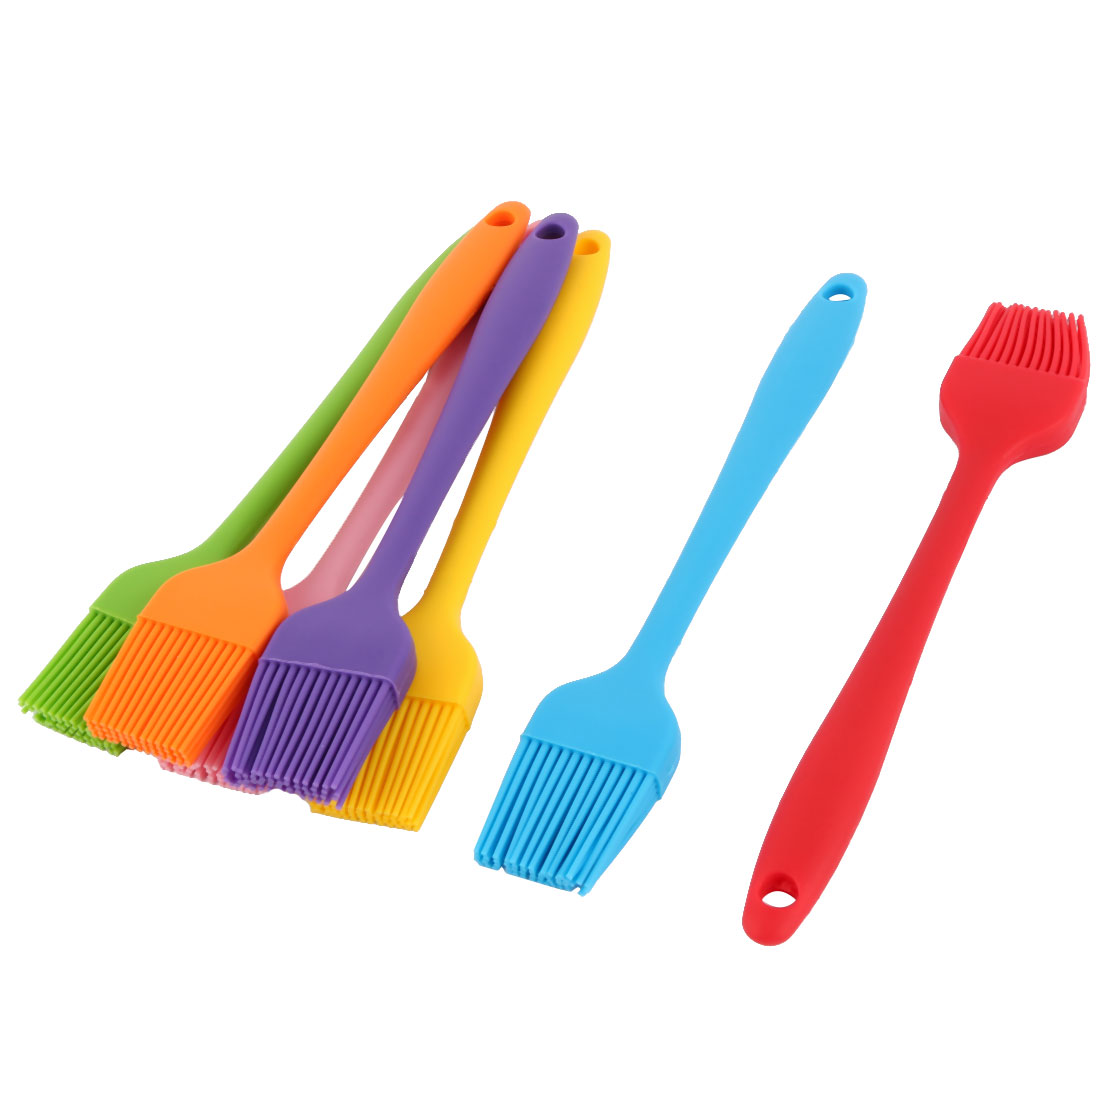 Bakery Cookie Cake Baking Tool Cream Butter Pastry Brush Assorted Color 7pcs by Unique-Bargains